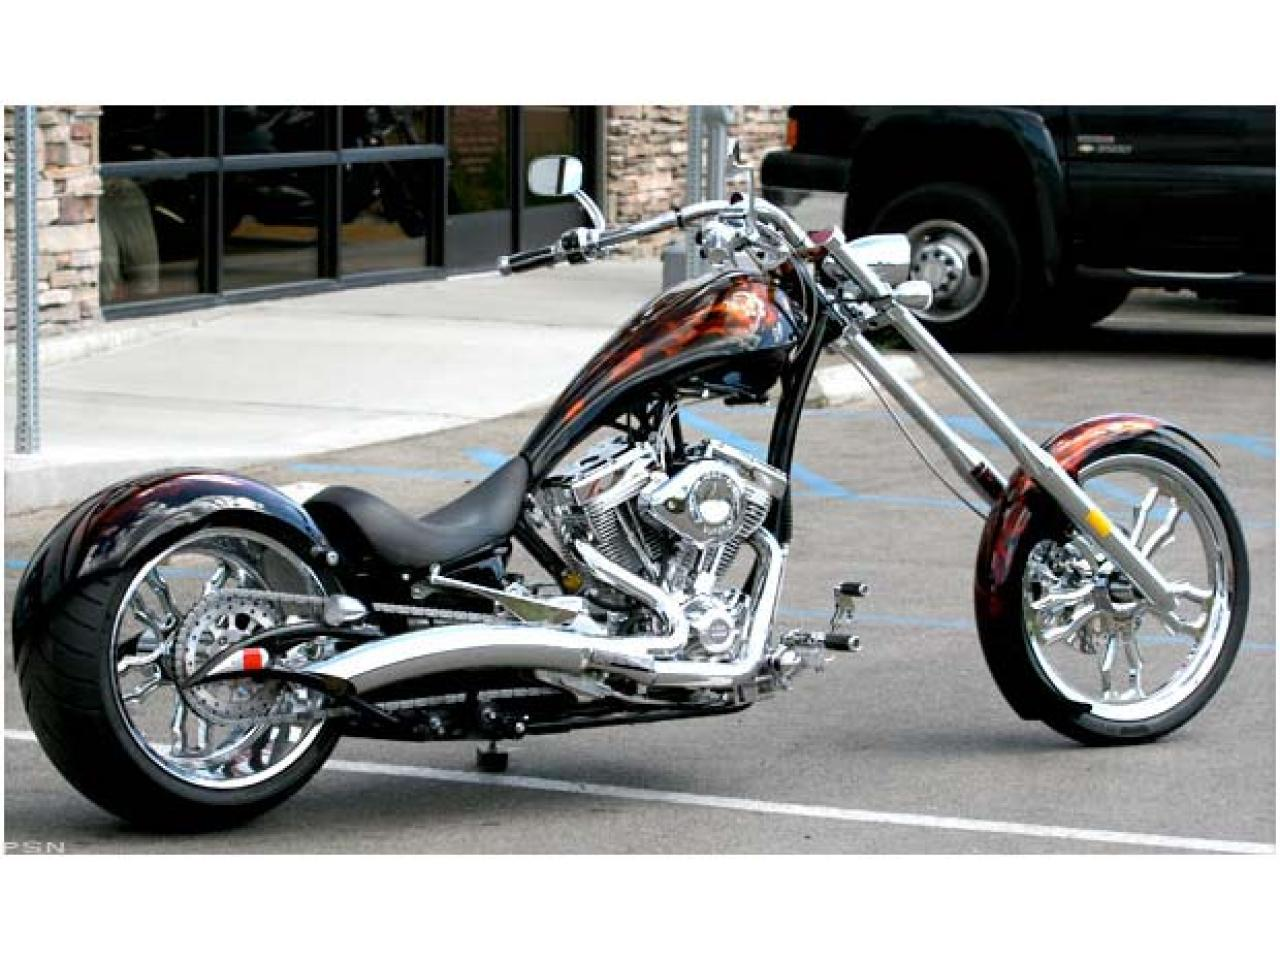 Big Bear Choppers GTX Standard 114 X-Wedge EFI 2010 images #66040